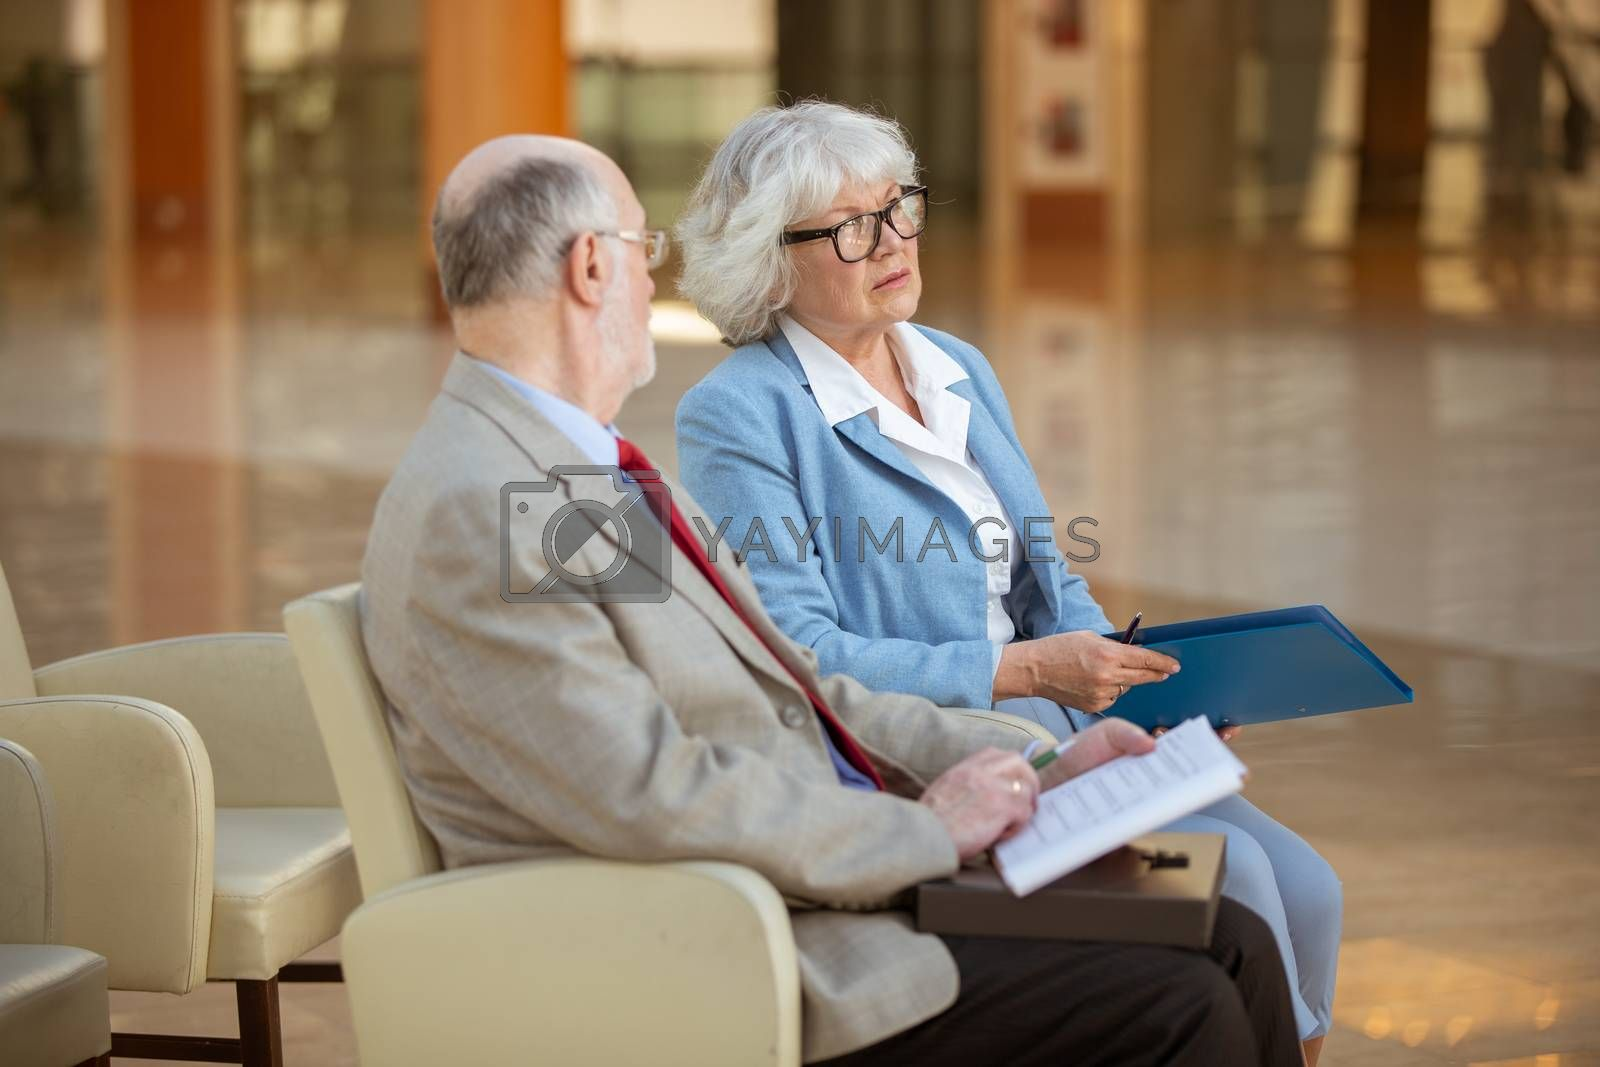 Senior people sitting in lobby and discuss documents